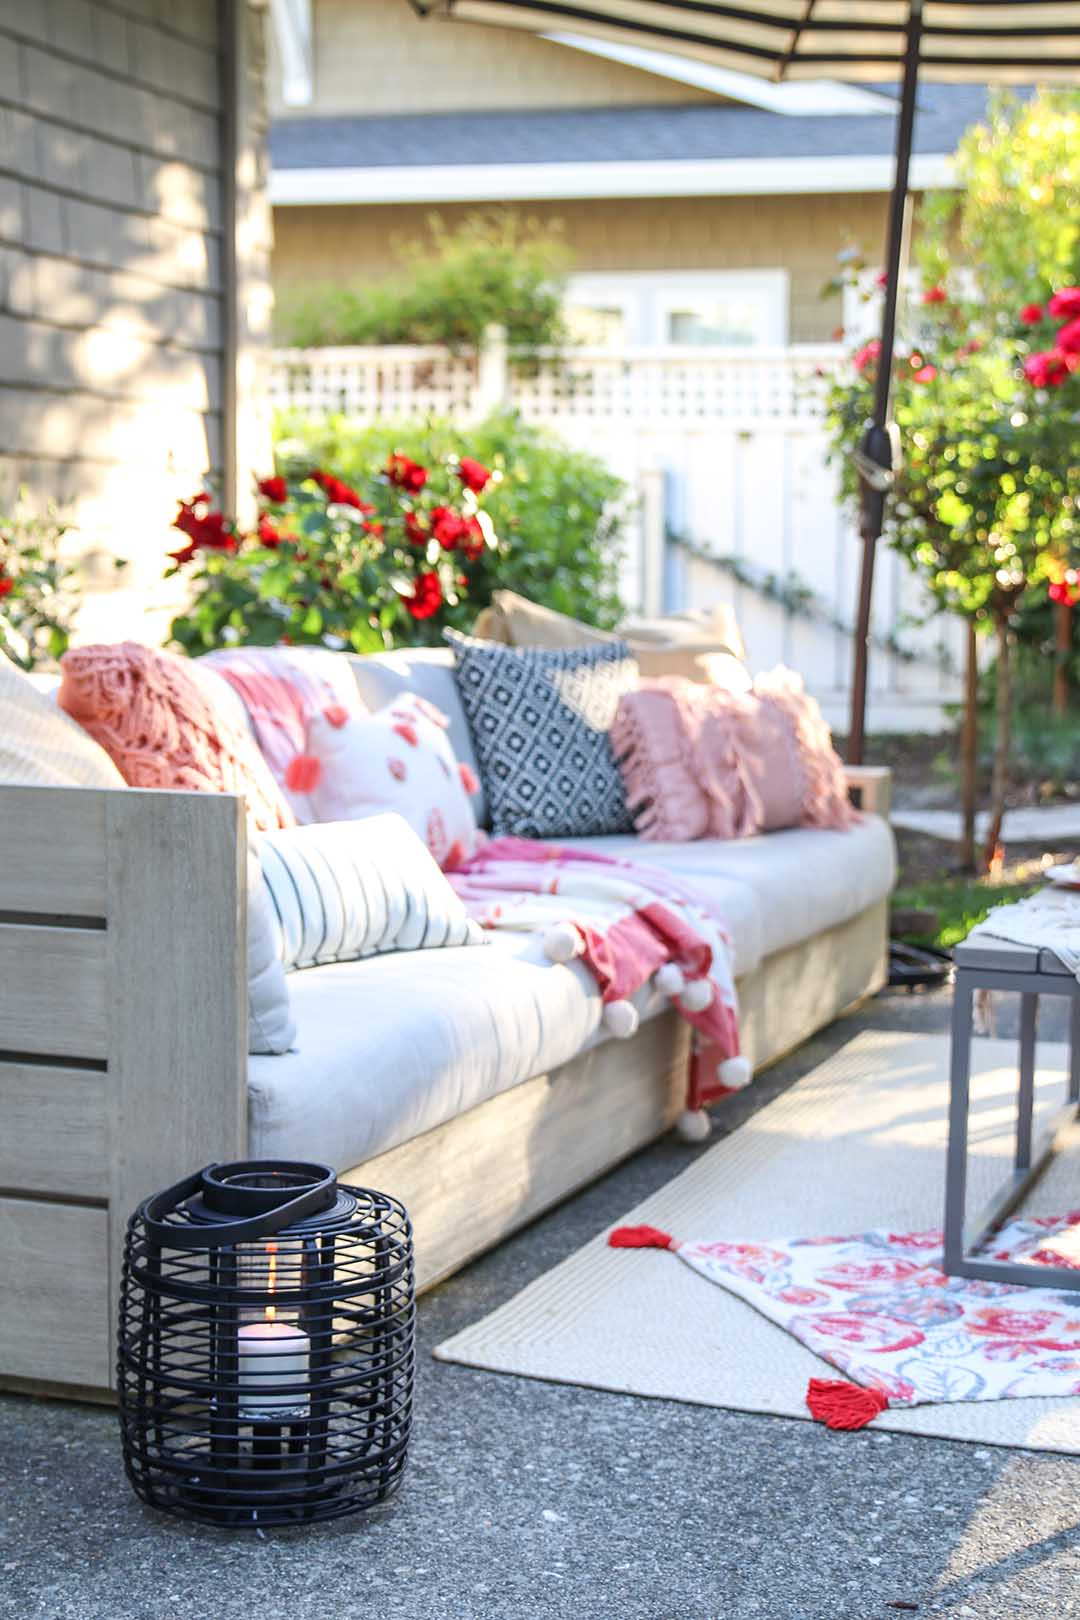 Patio Decorating Ideas: 7 Simple Summer Updates - Modern Glam